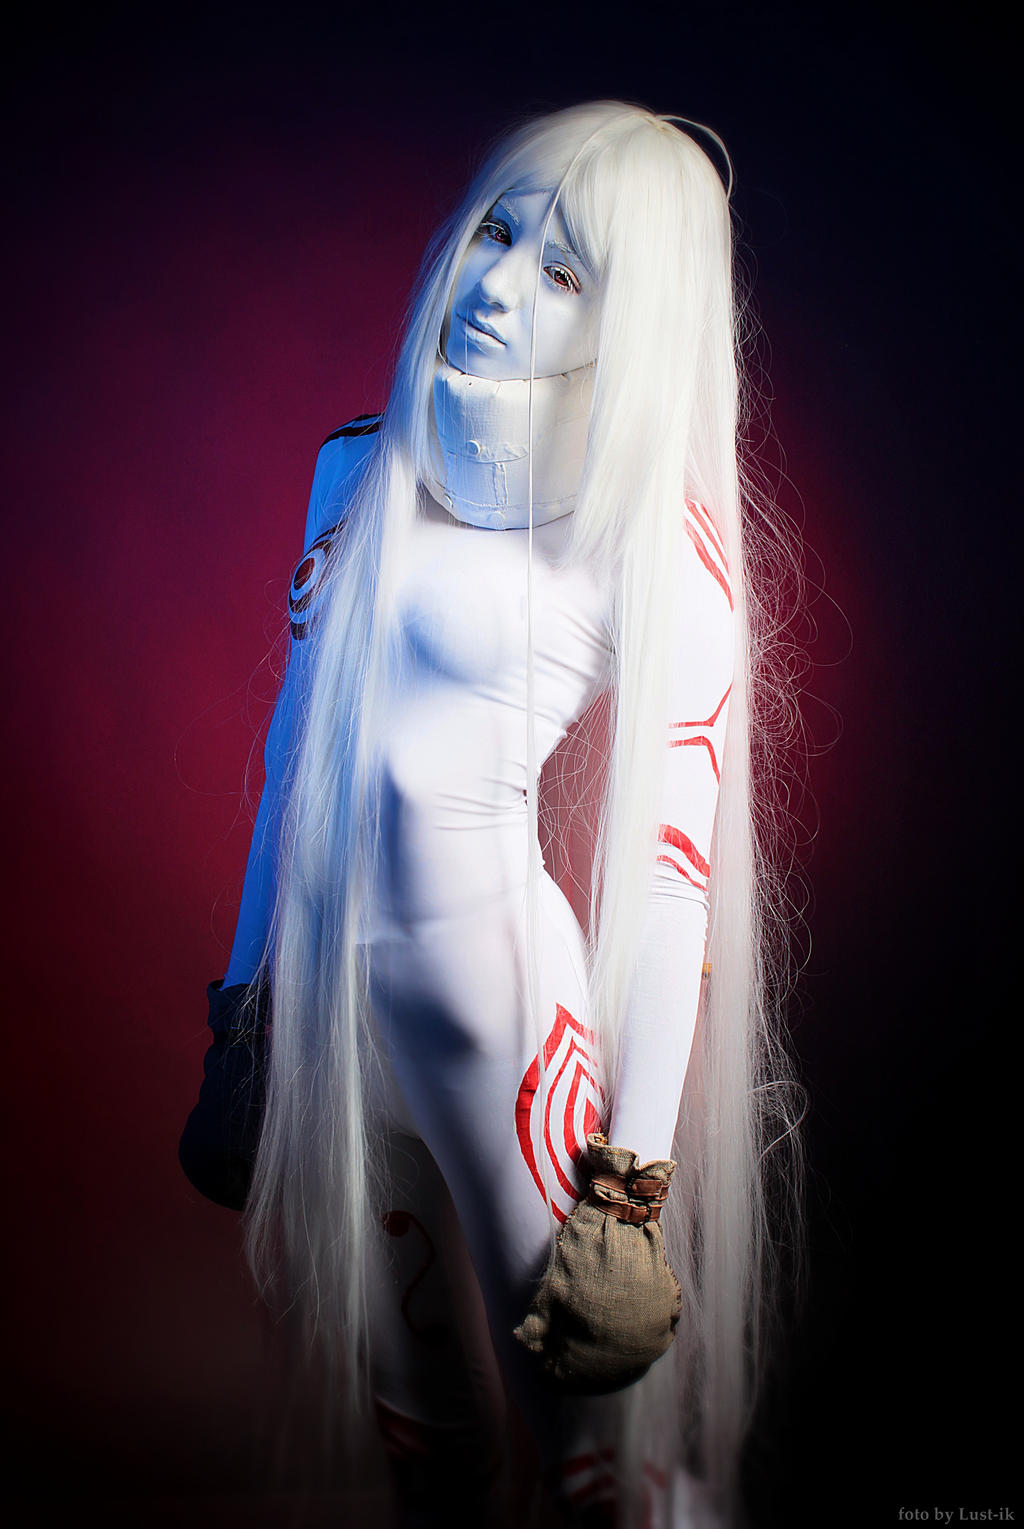 Deadman Wonderland by Lust-ik